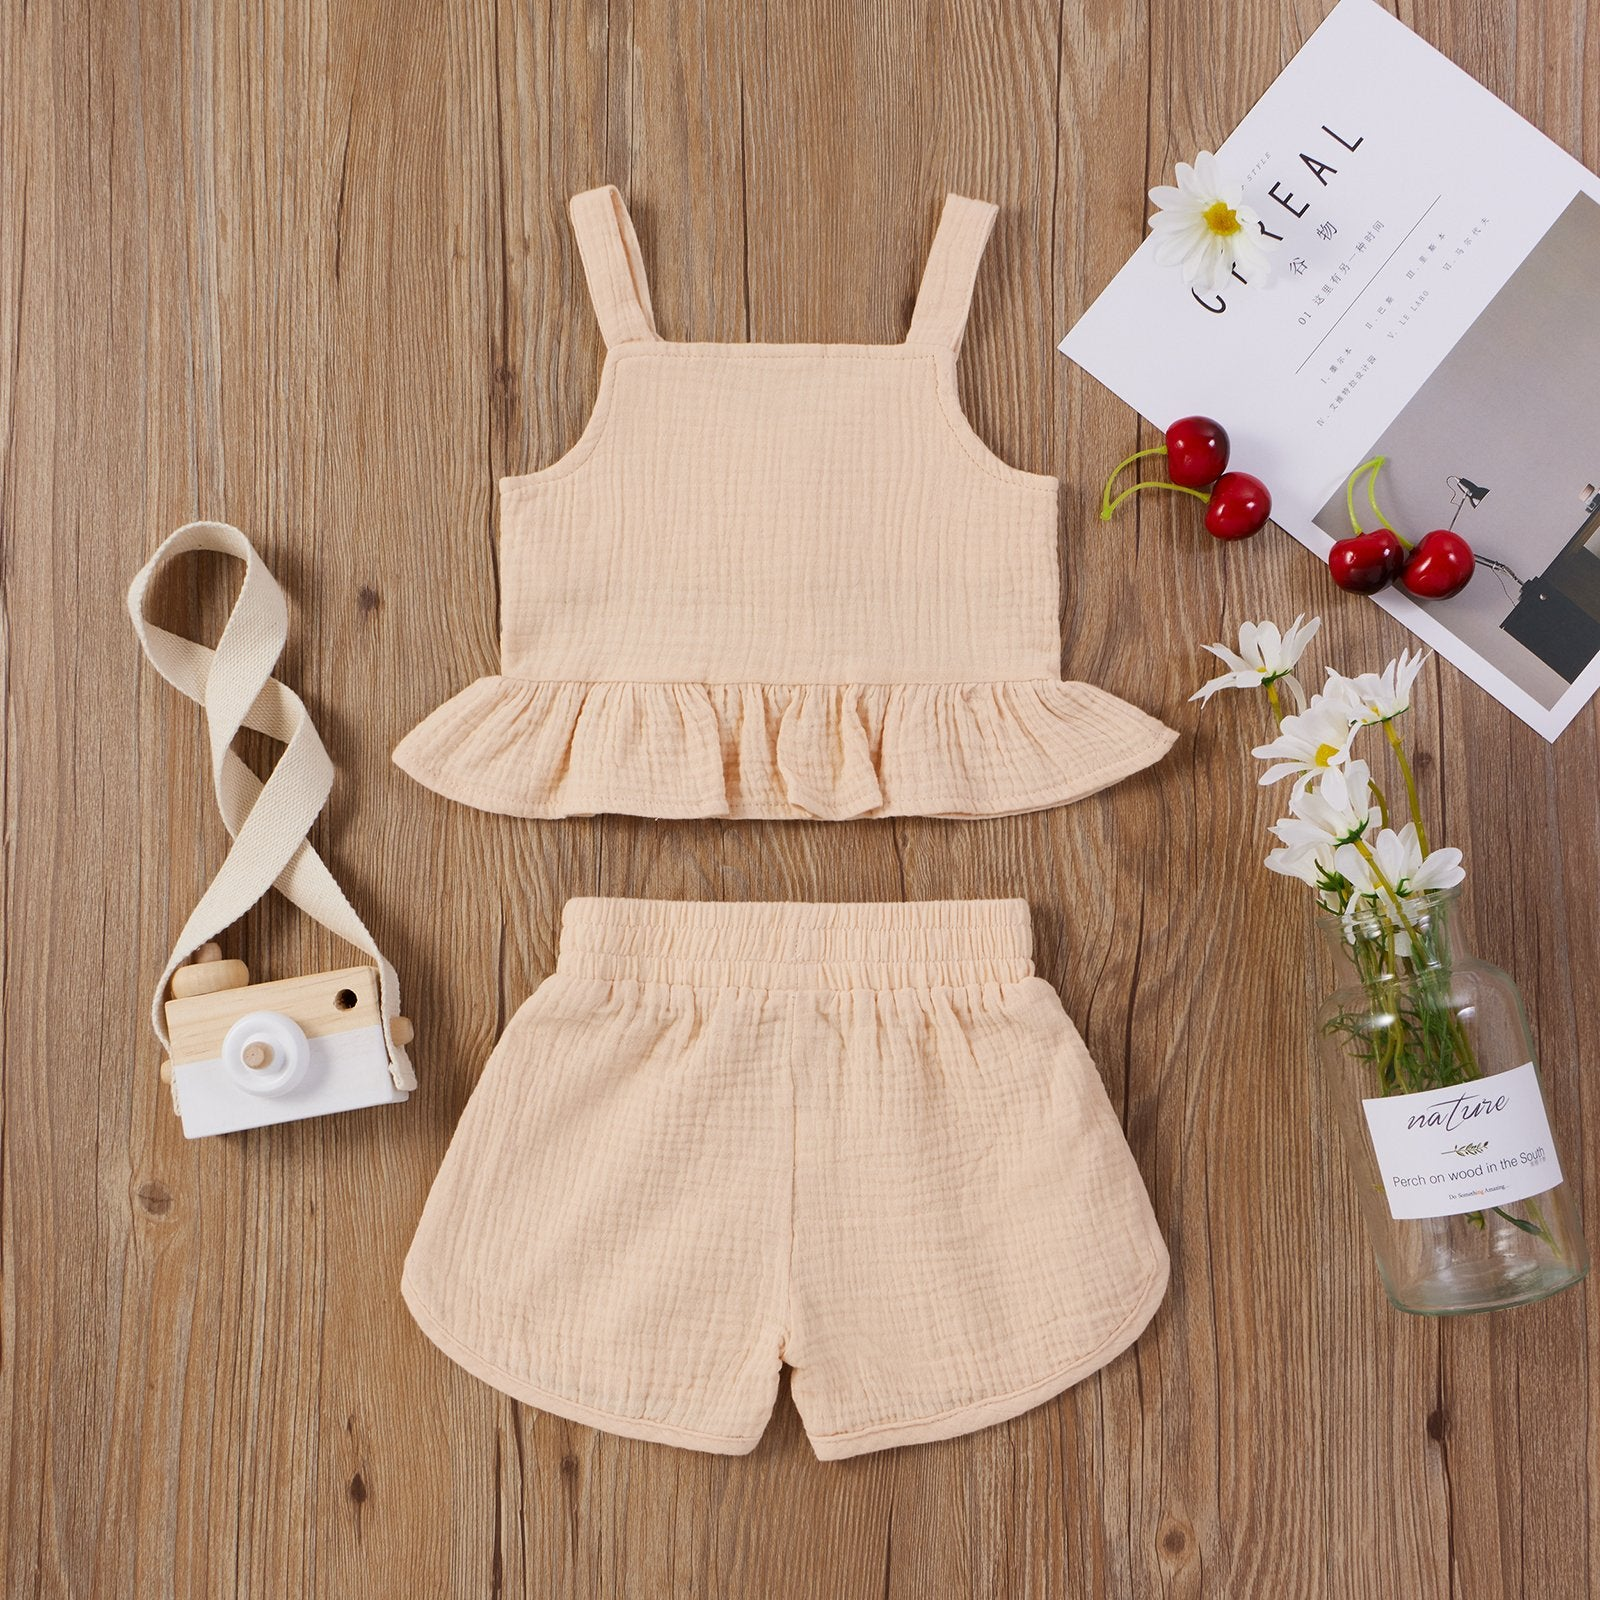 2-piece Baby Pure Cotton Sets